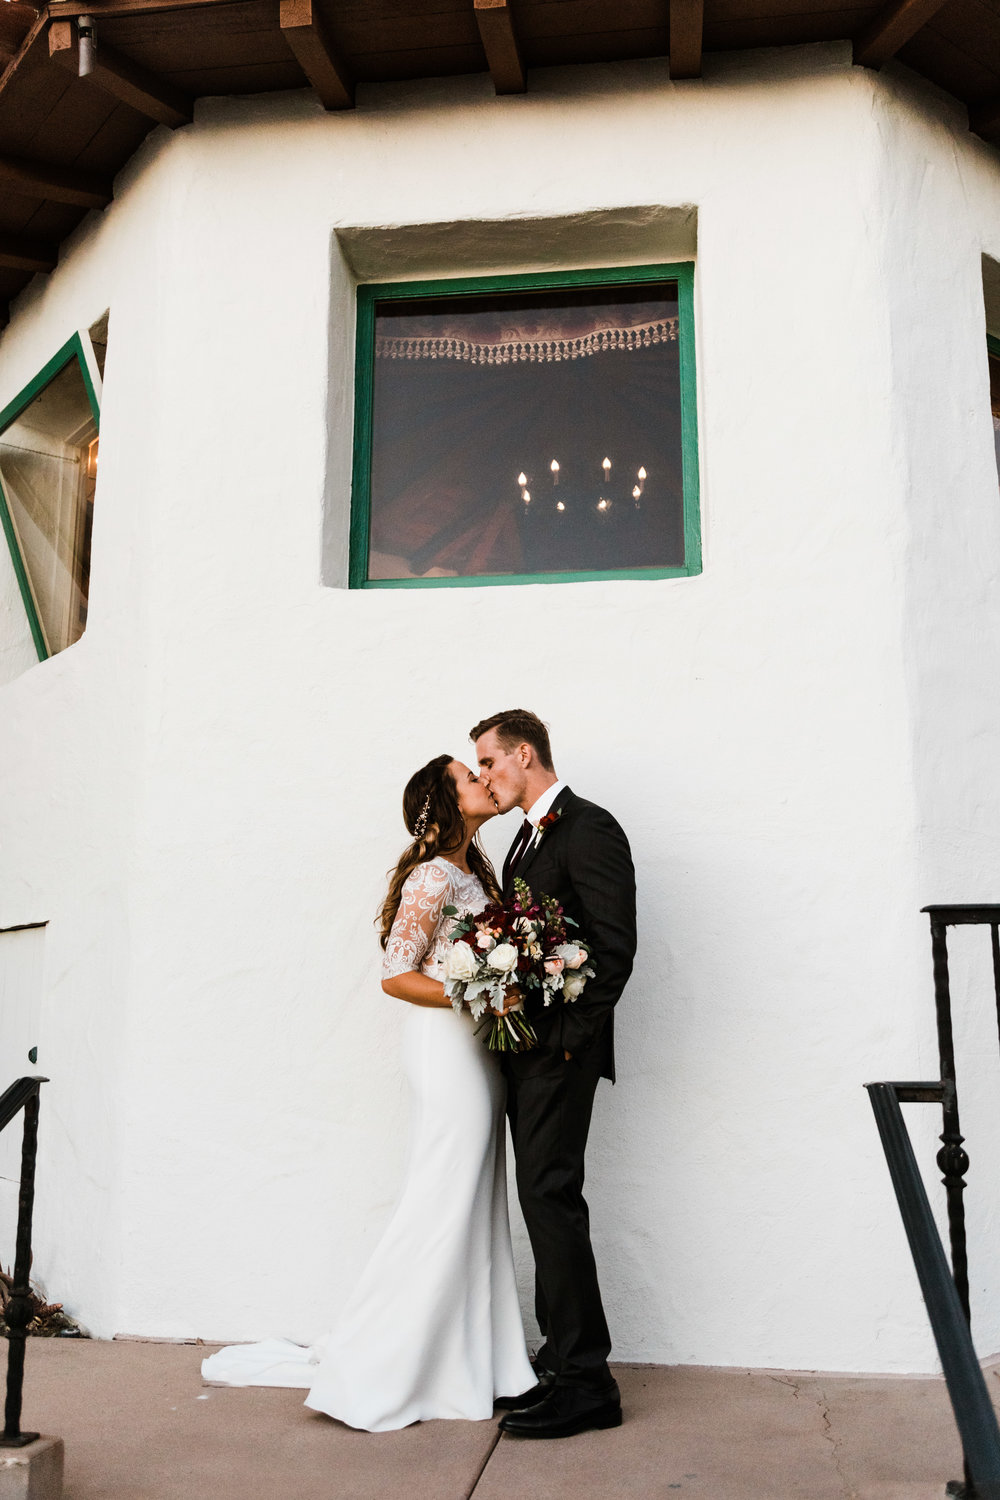 Clarisse-Rae-Southern-California-Wedding-Photographer-Bridal-Bouquet-Inspiration-3